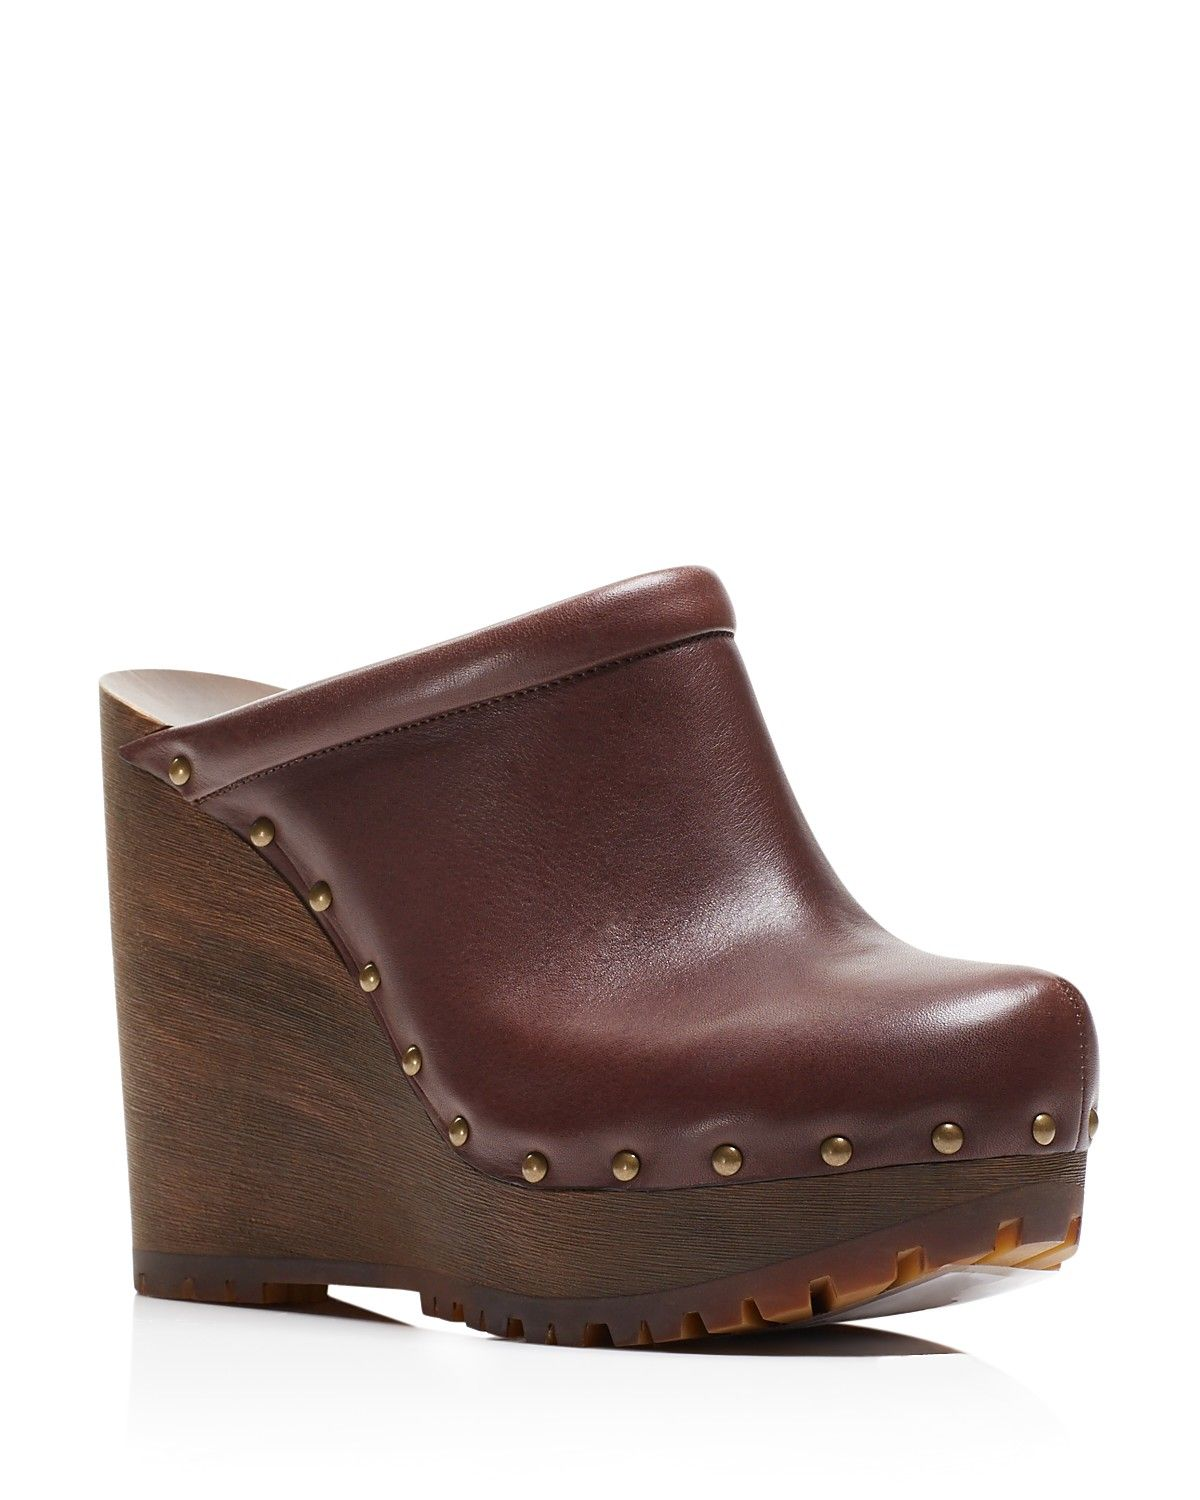 c1c6360f See By Chloé Clive Studded Platform Wedge Clogs | Mules and Clogs ...